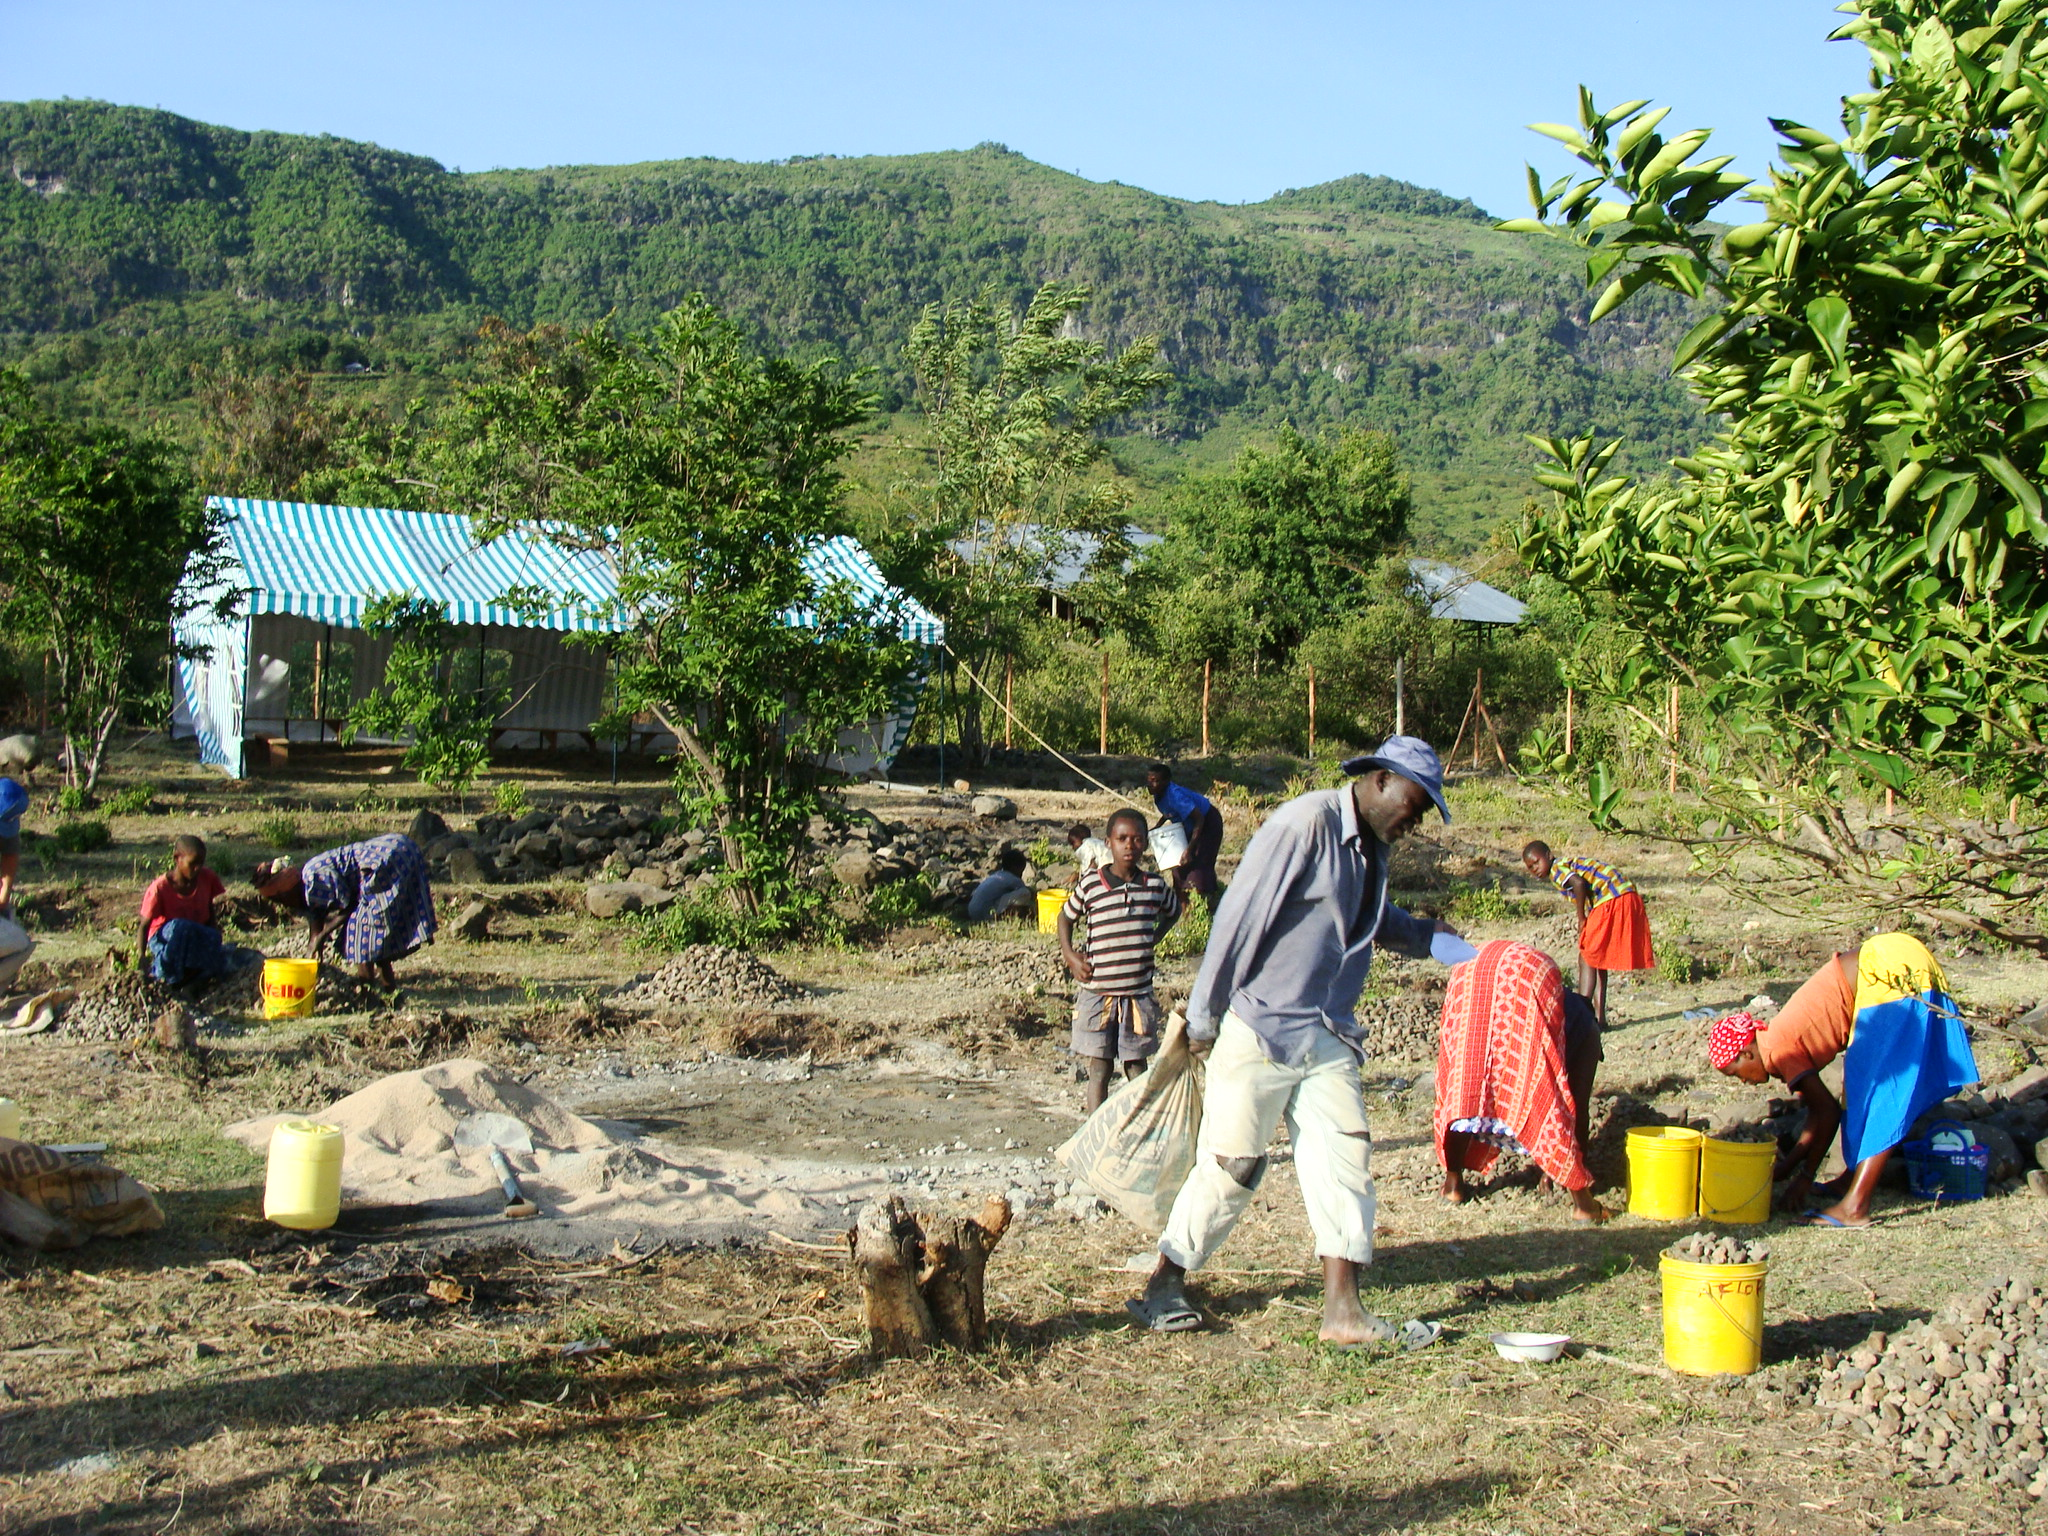 Clearing the site, January 2008.